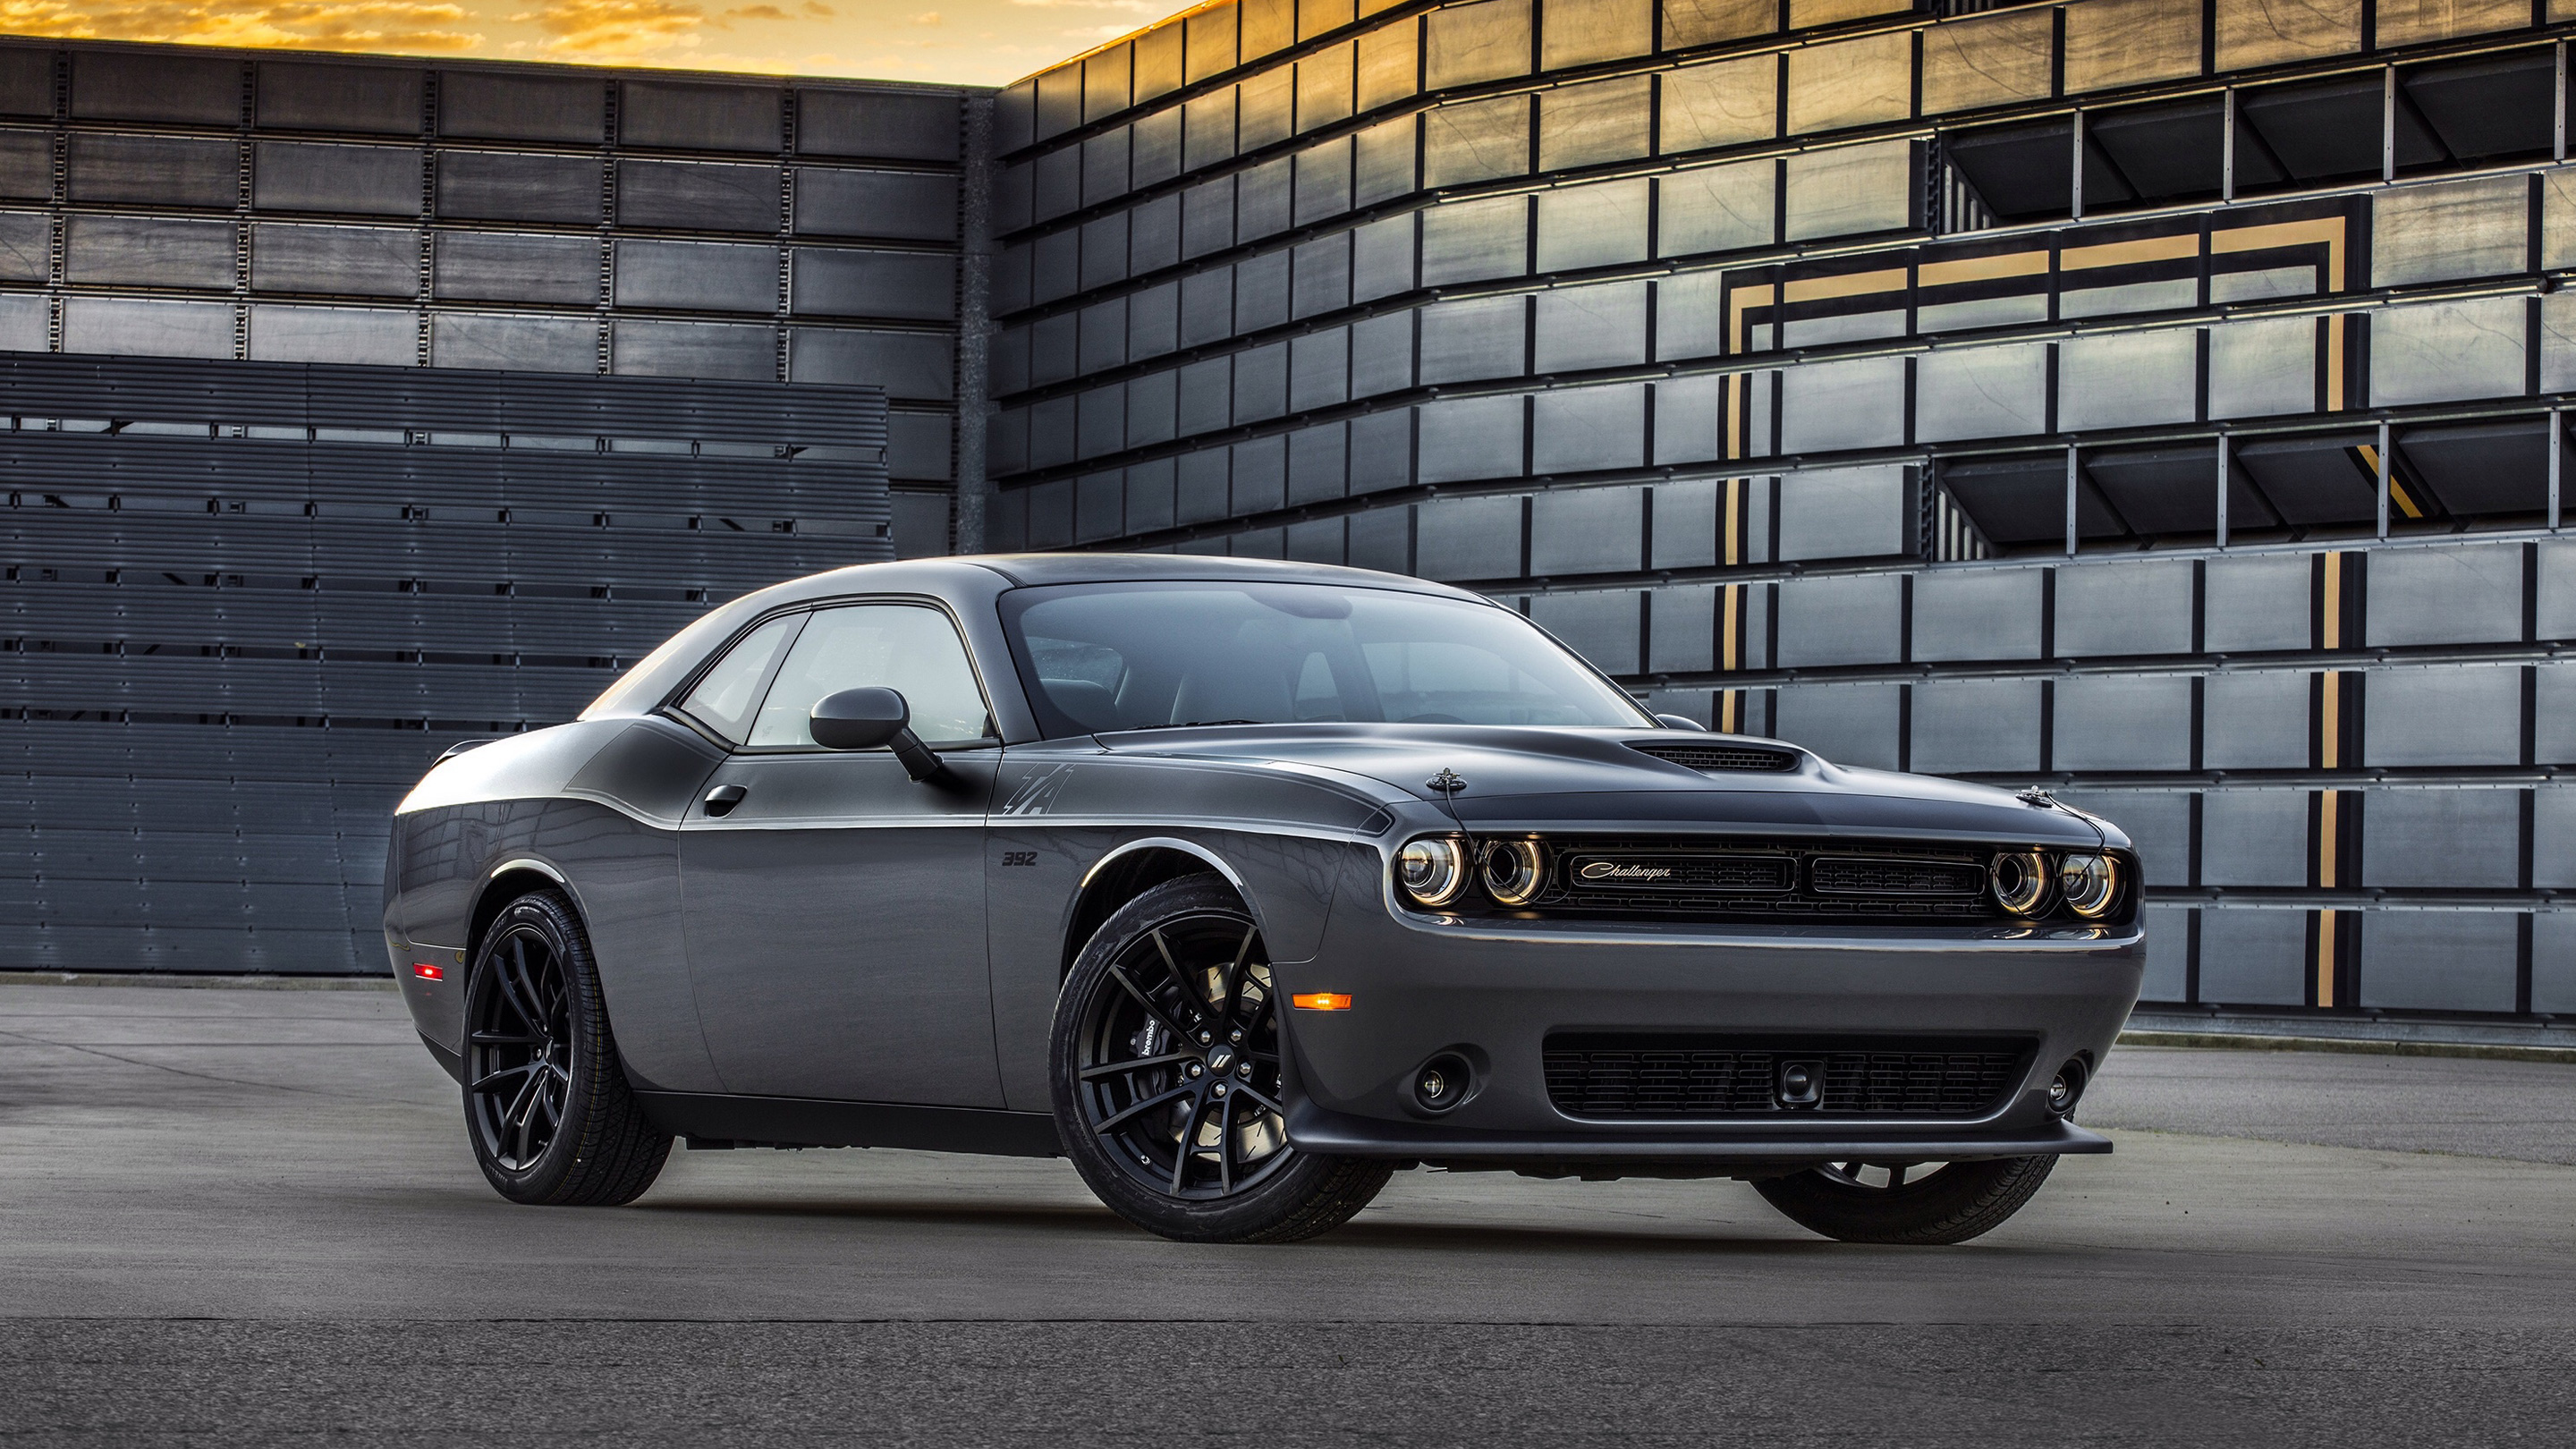 2017 dodge challenger ta wallpaper hd car wallpapers id 7059. Black Bedroom Furniture Sets. Home Design Ideas